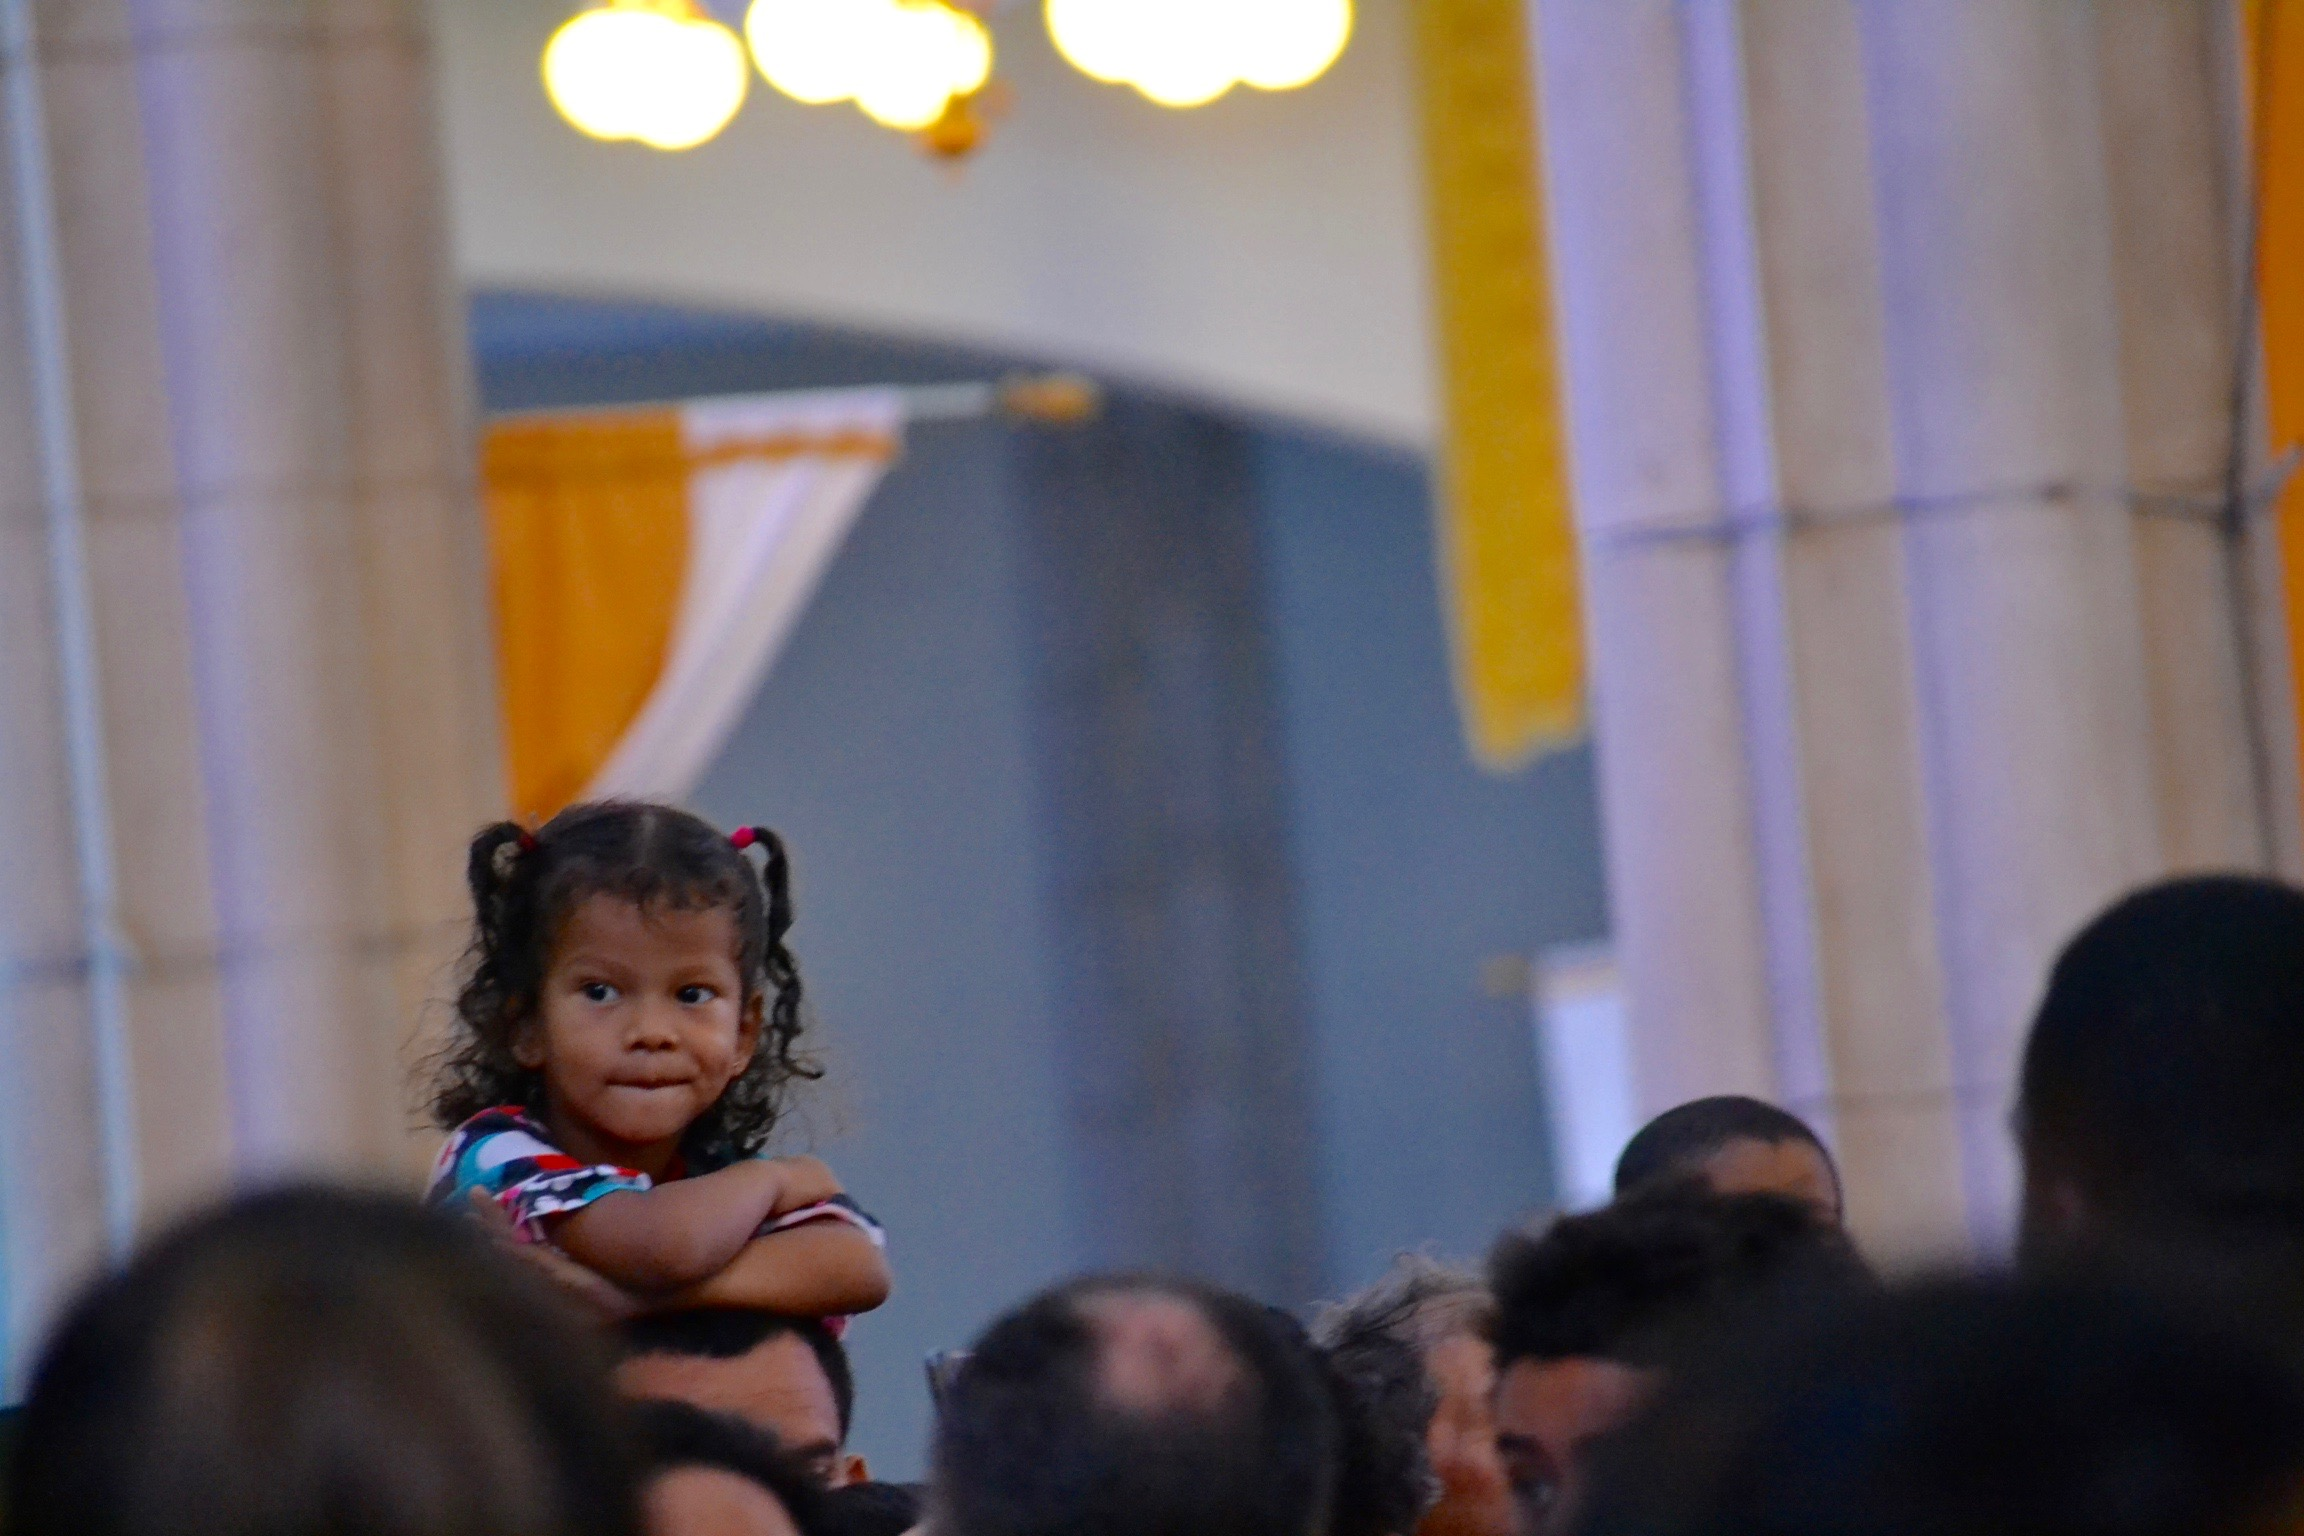 Sitting on a relative's shoulders, a Honduran girl watches Mass (CT/Photo by Gail Finke)